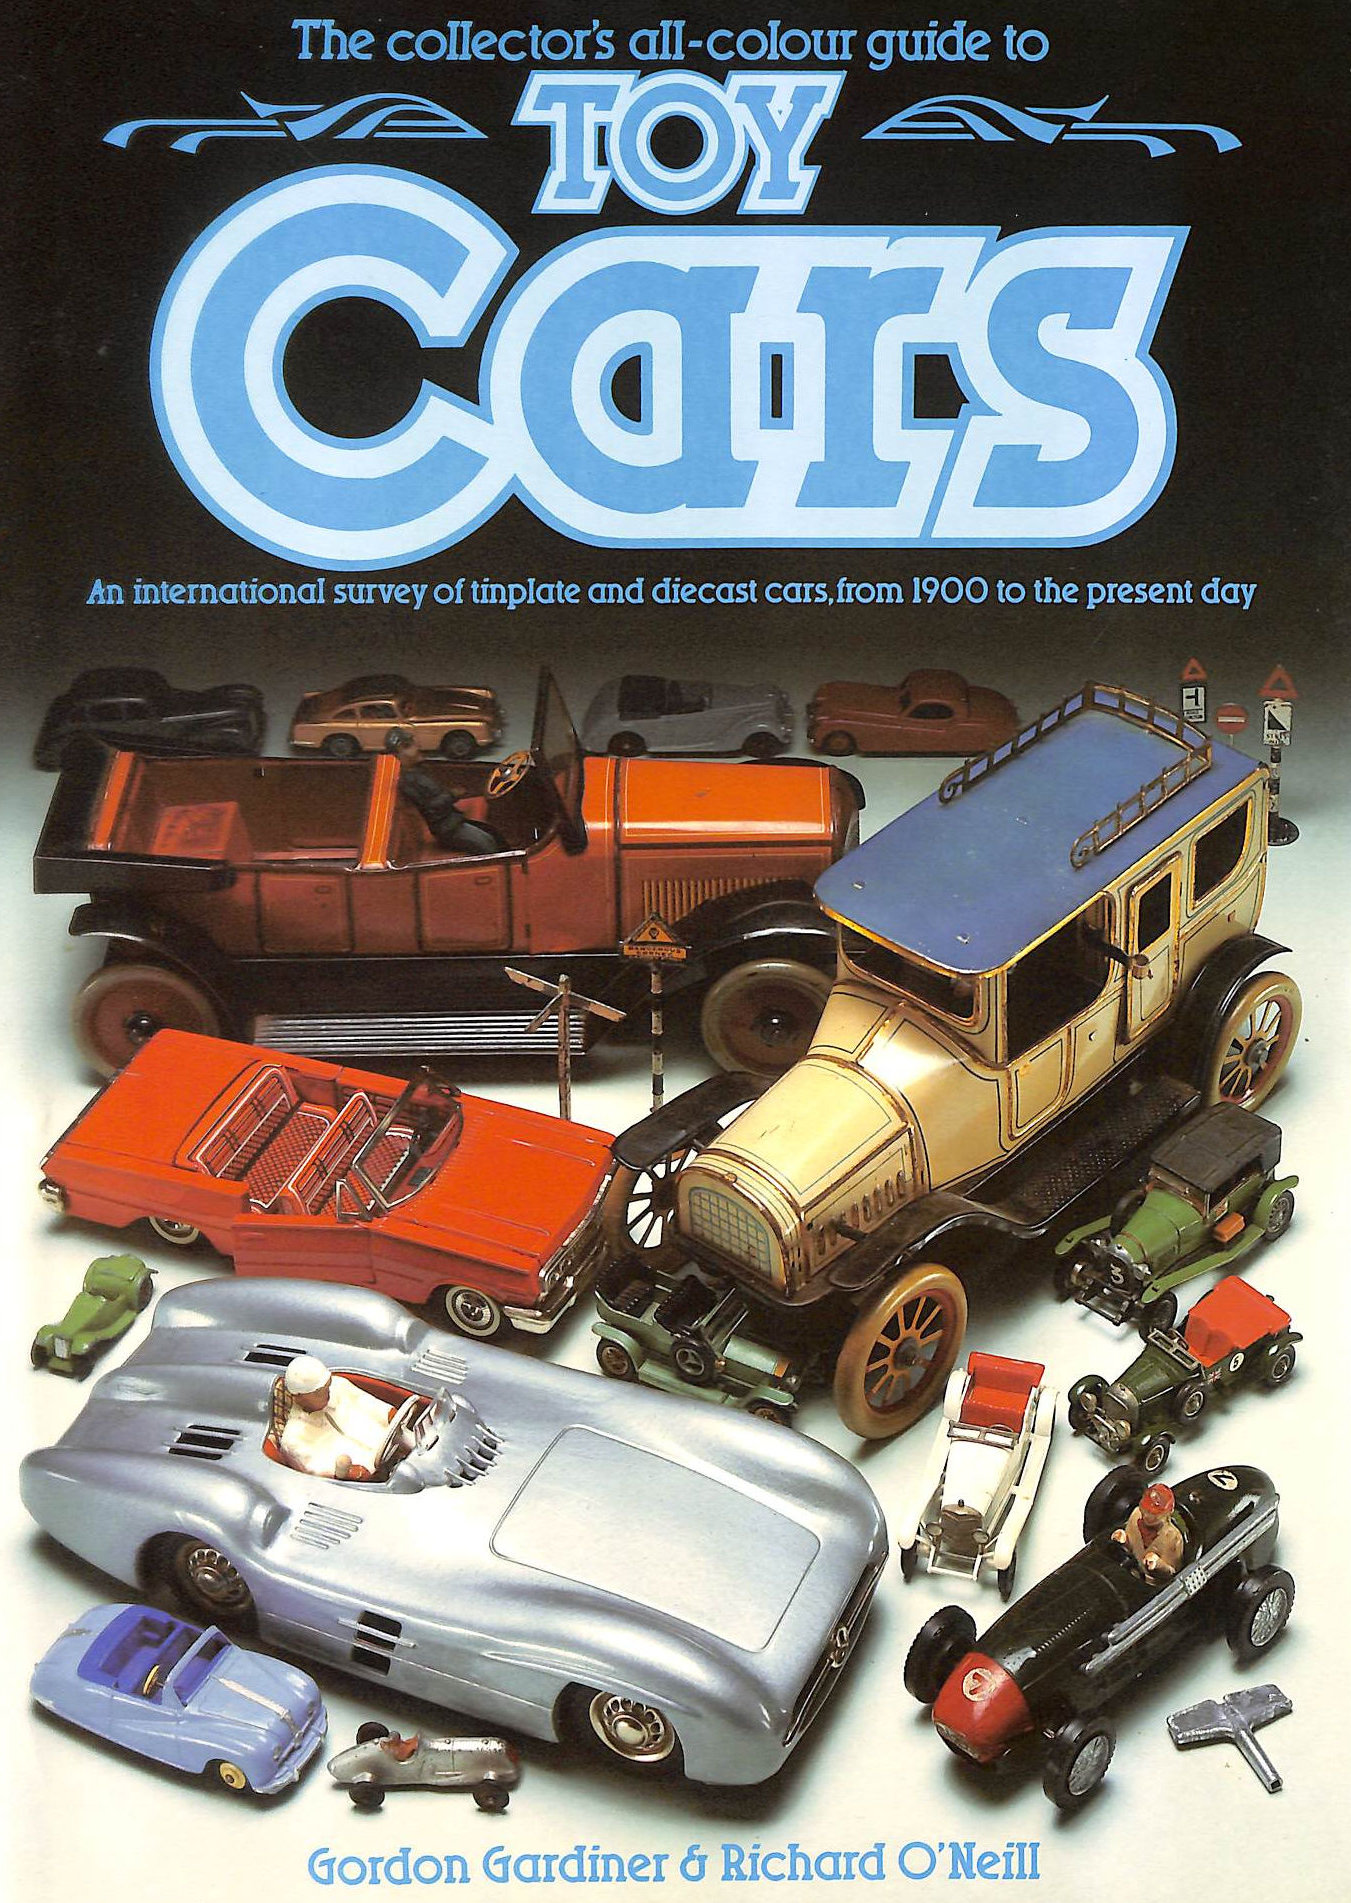 Image for Toy Cars: An International Survey Of Tinplate And Diecast Cars From 1900 To The Present Day (Collector's All Colour Guides)